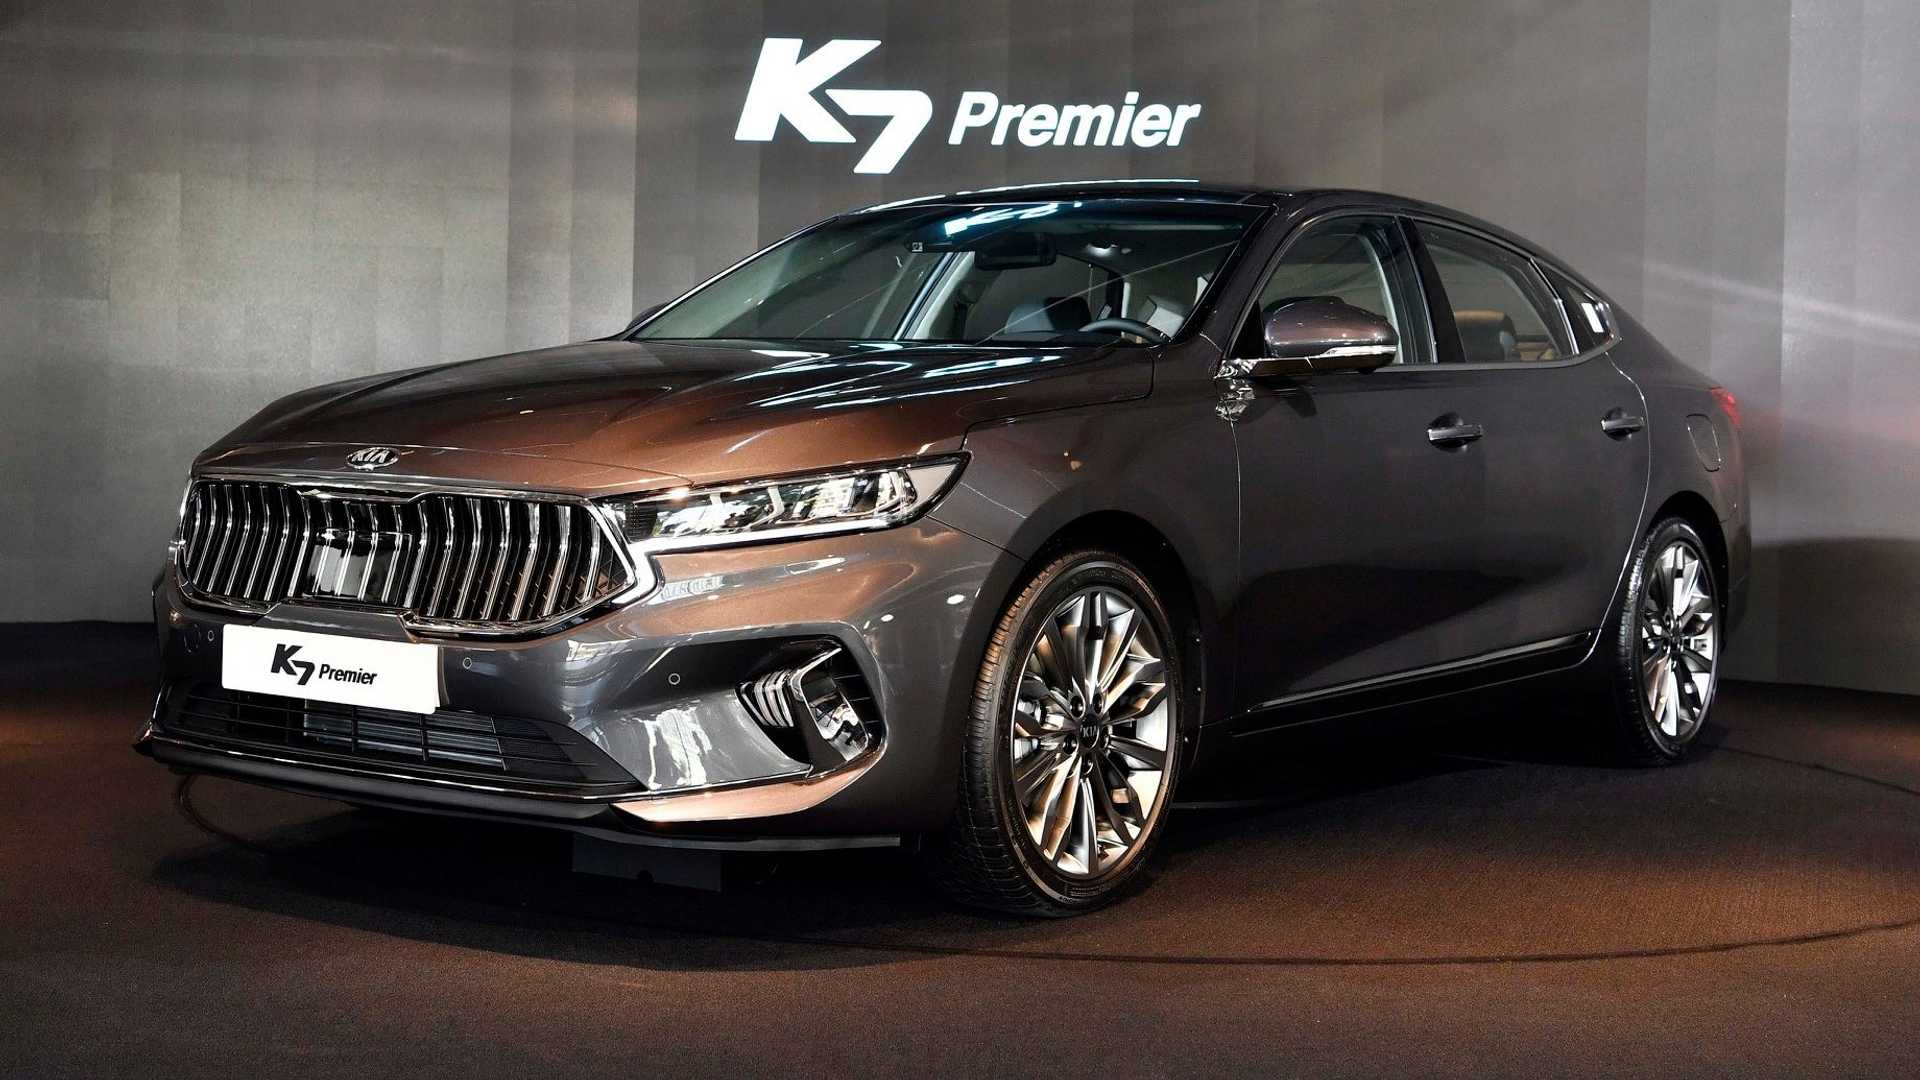 28 A 2020 All Kia Cadenza Research New